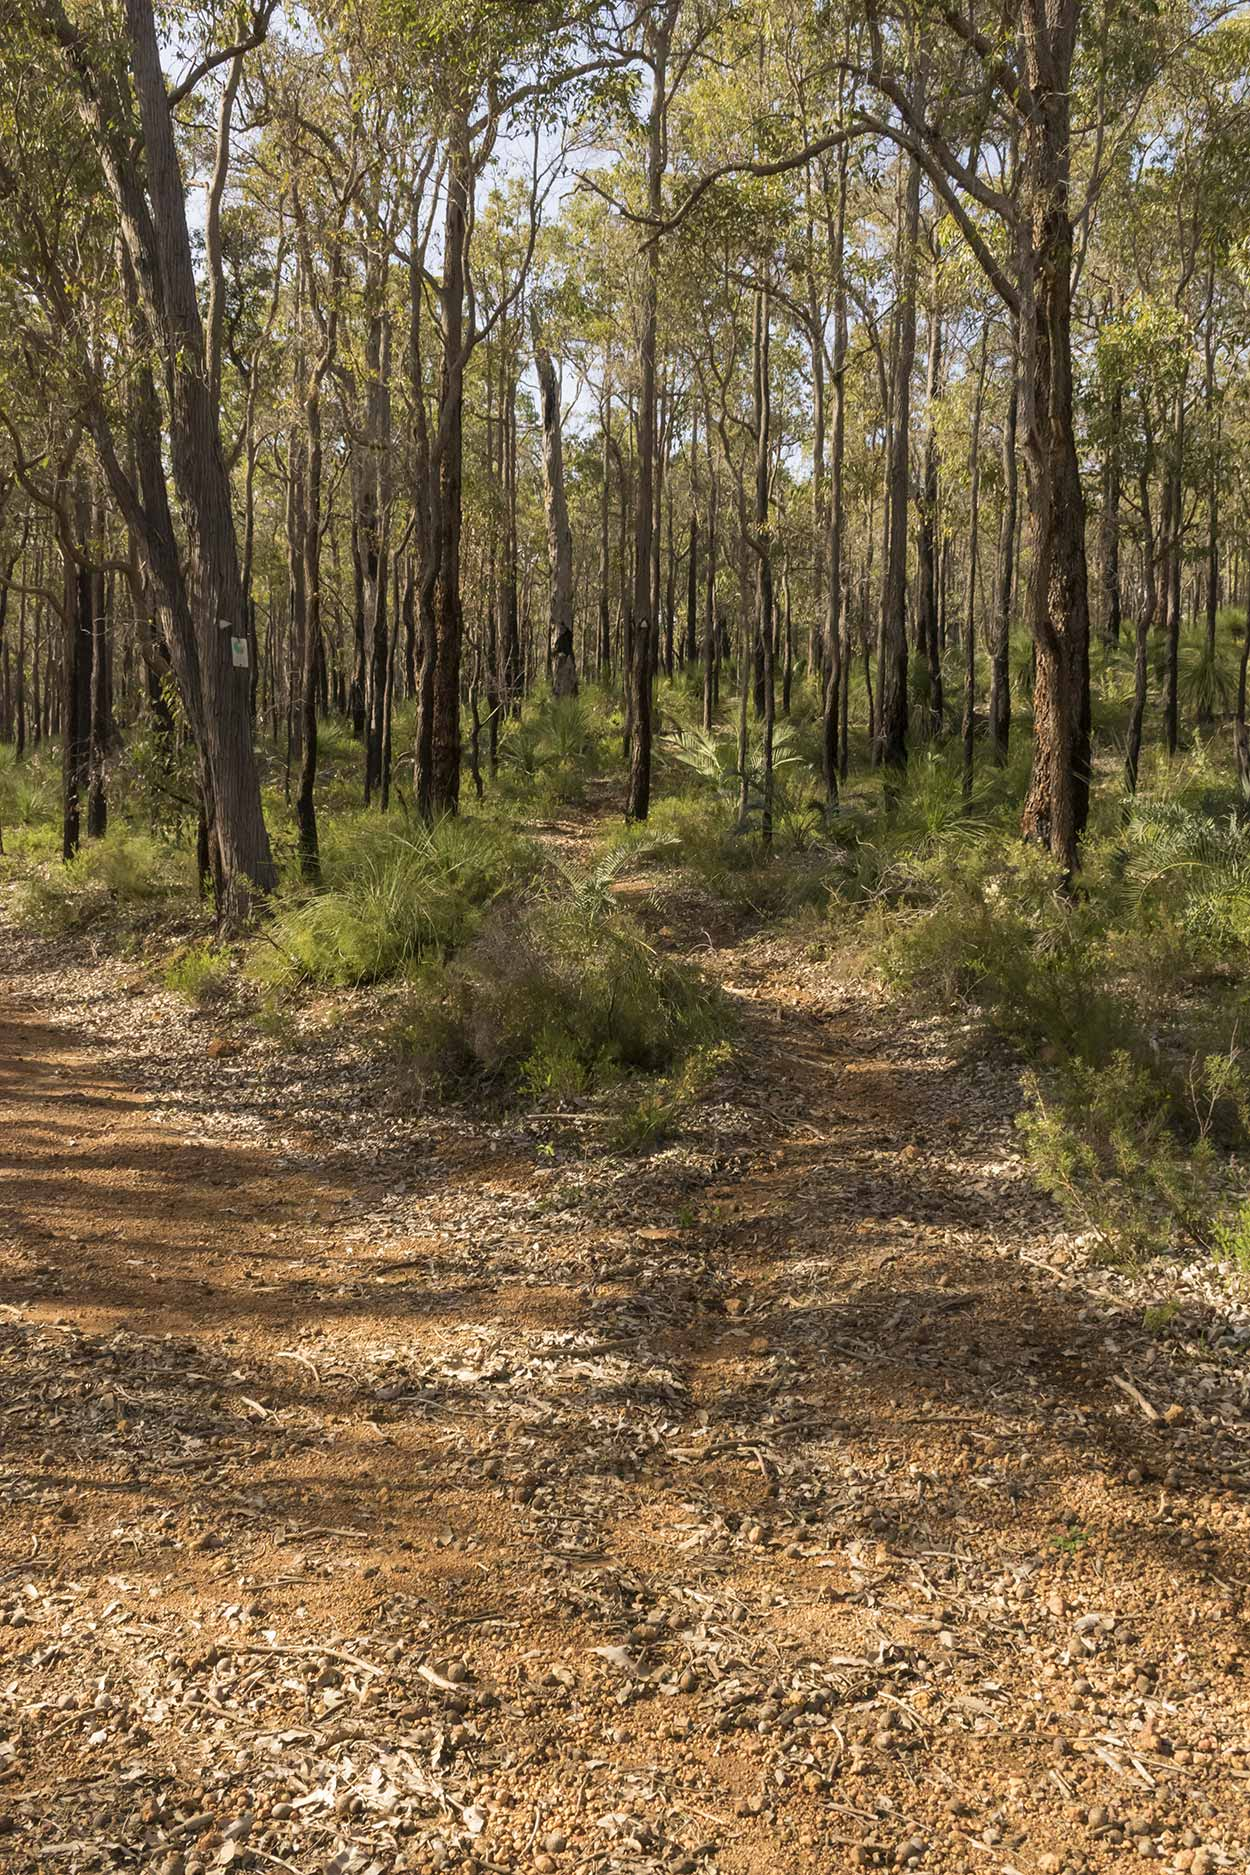 A diversion into the bush on the Victoria Reservoir Walk, Korung National Park, Perth, Western Australia